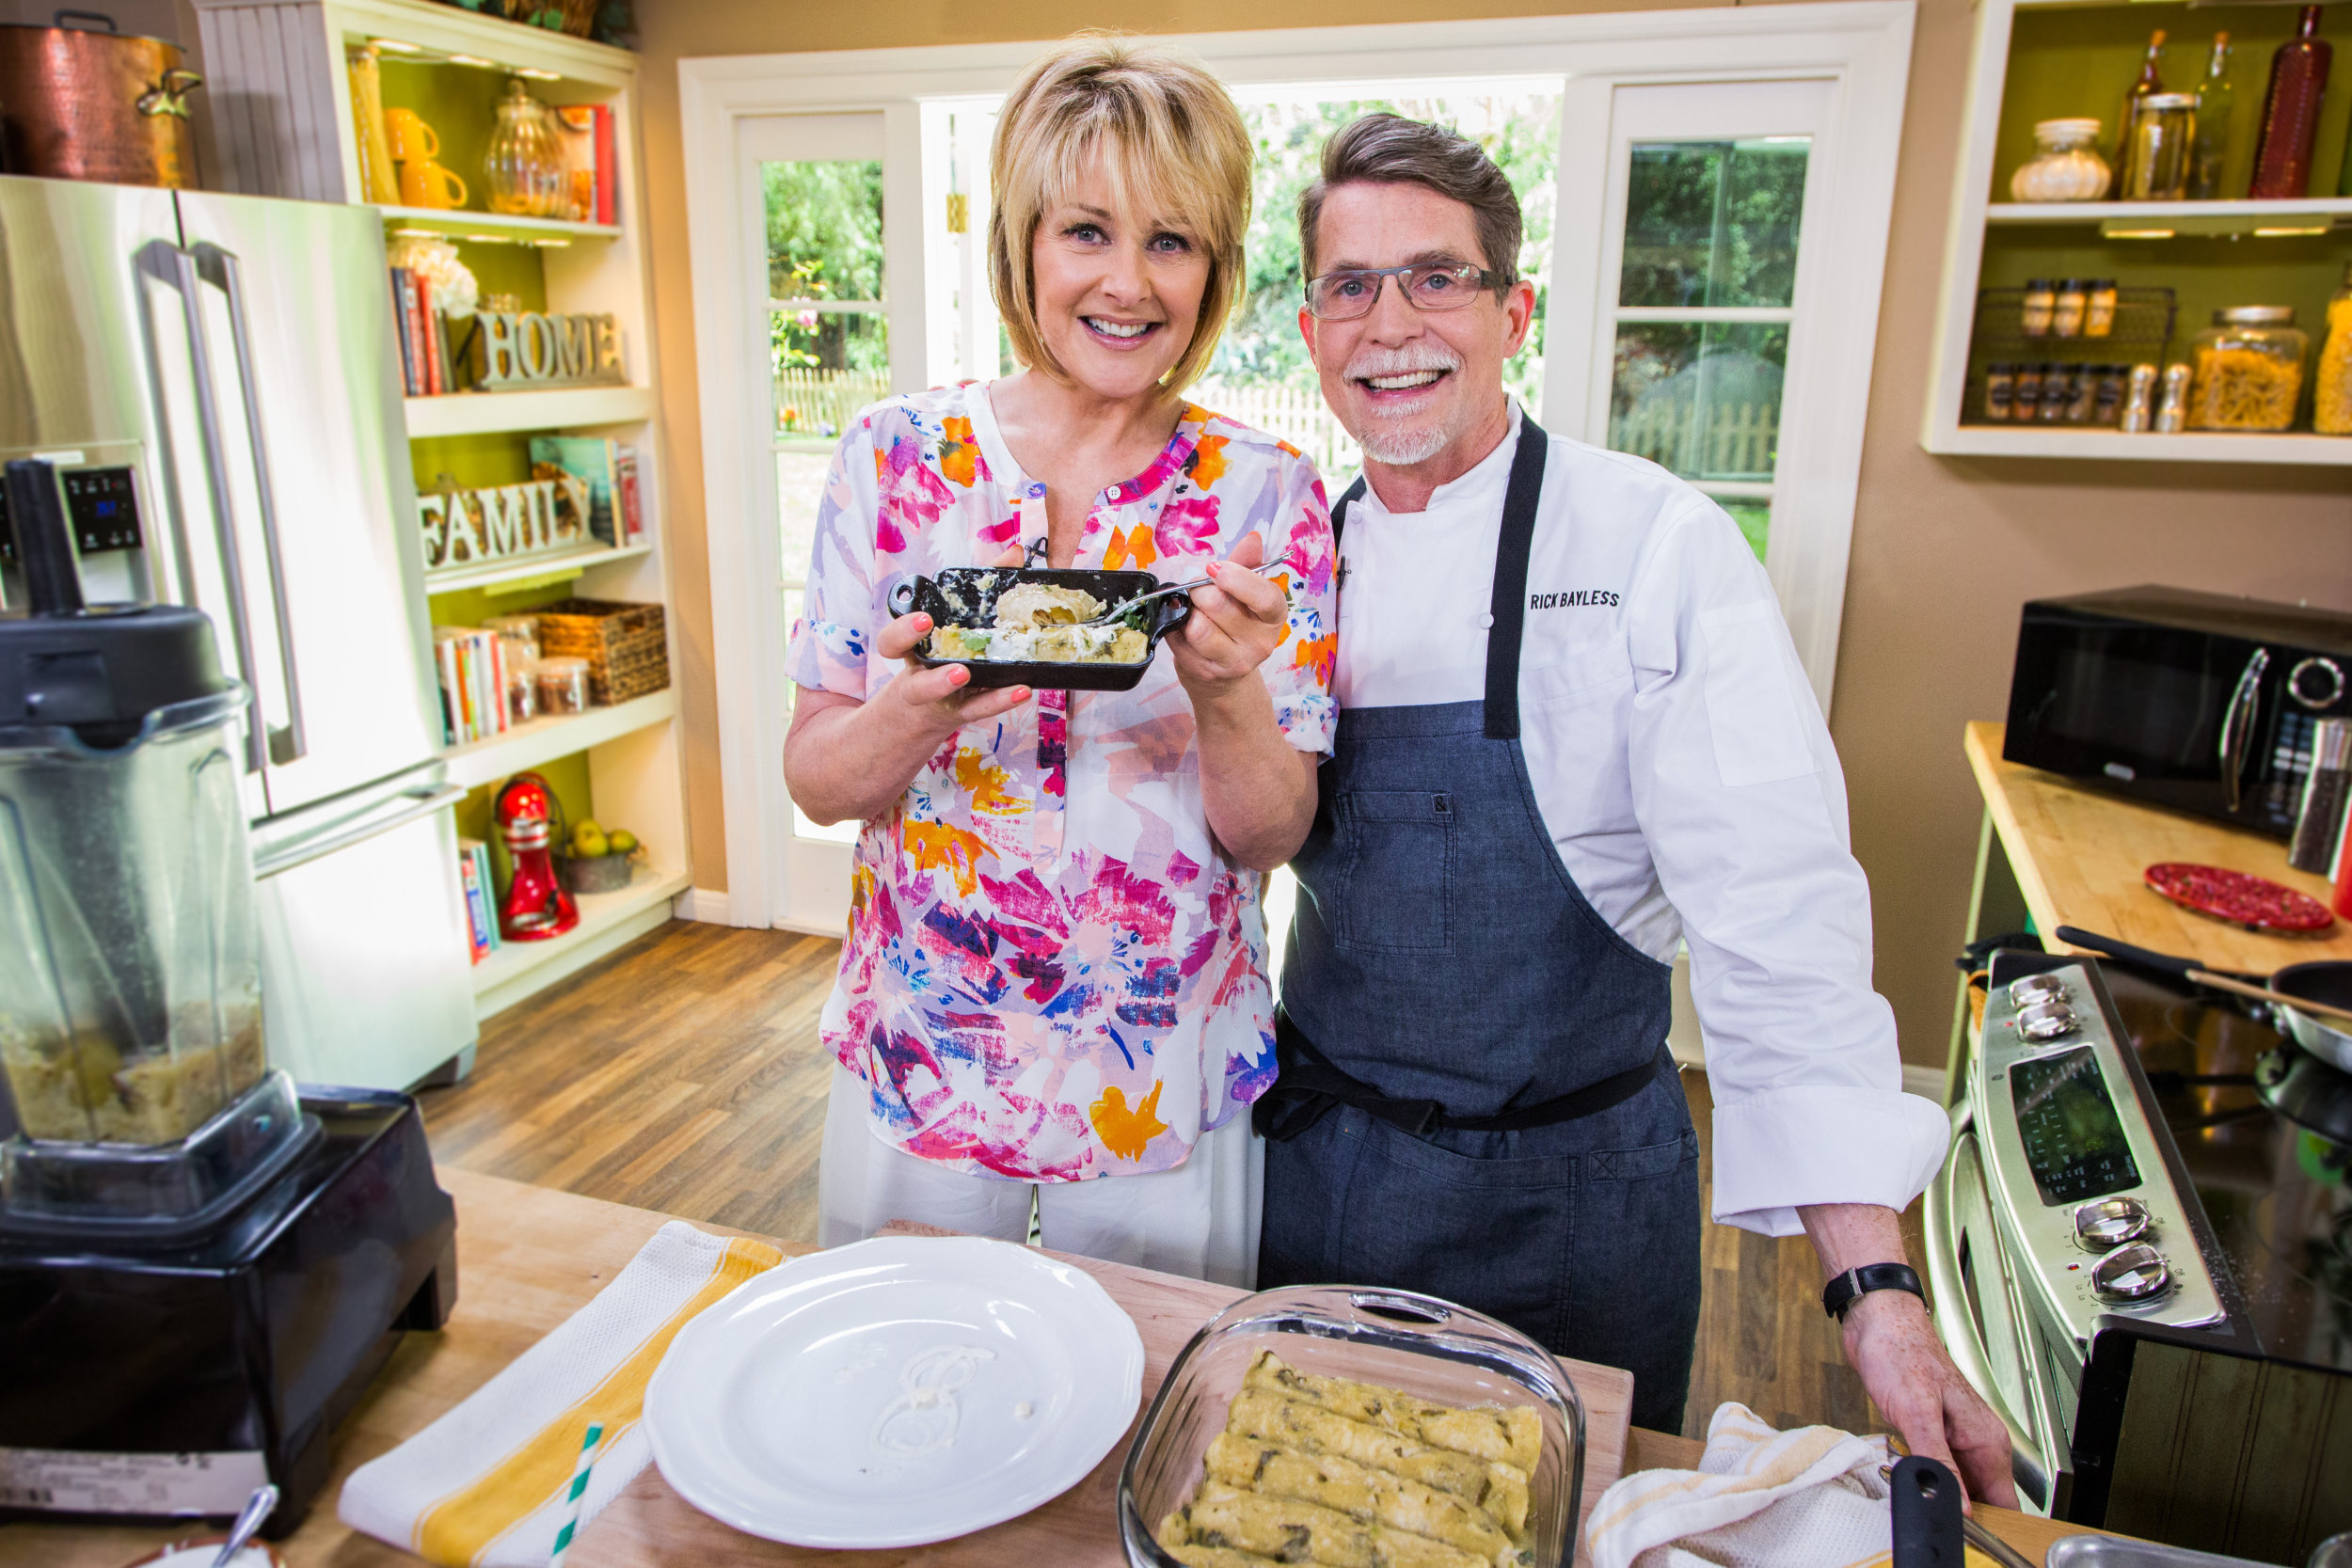 Hollywood steals home and family - Enchiladas Verdes Home Family